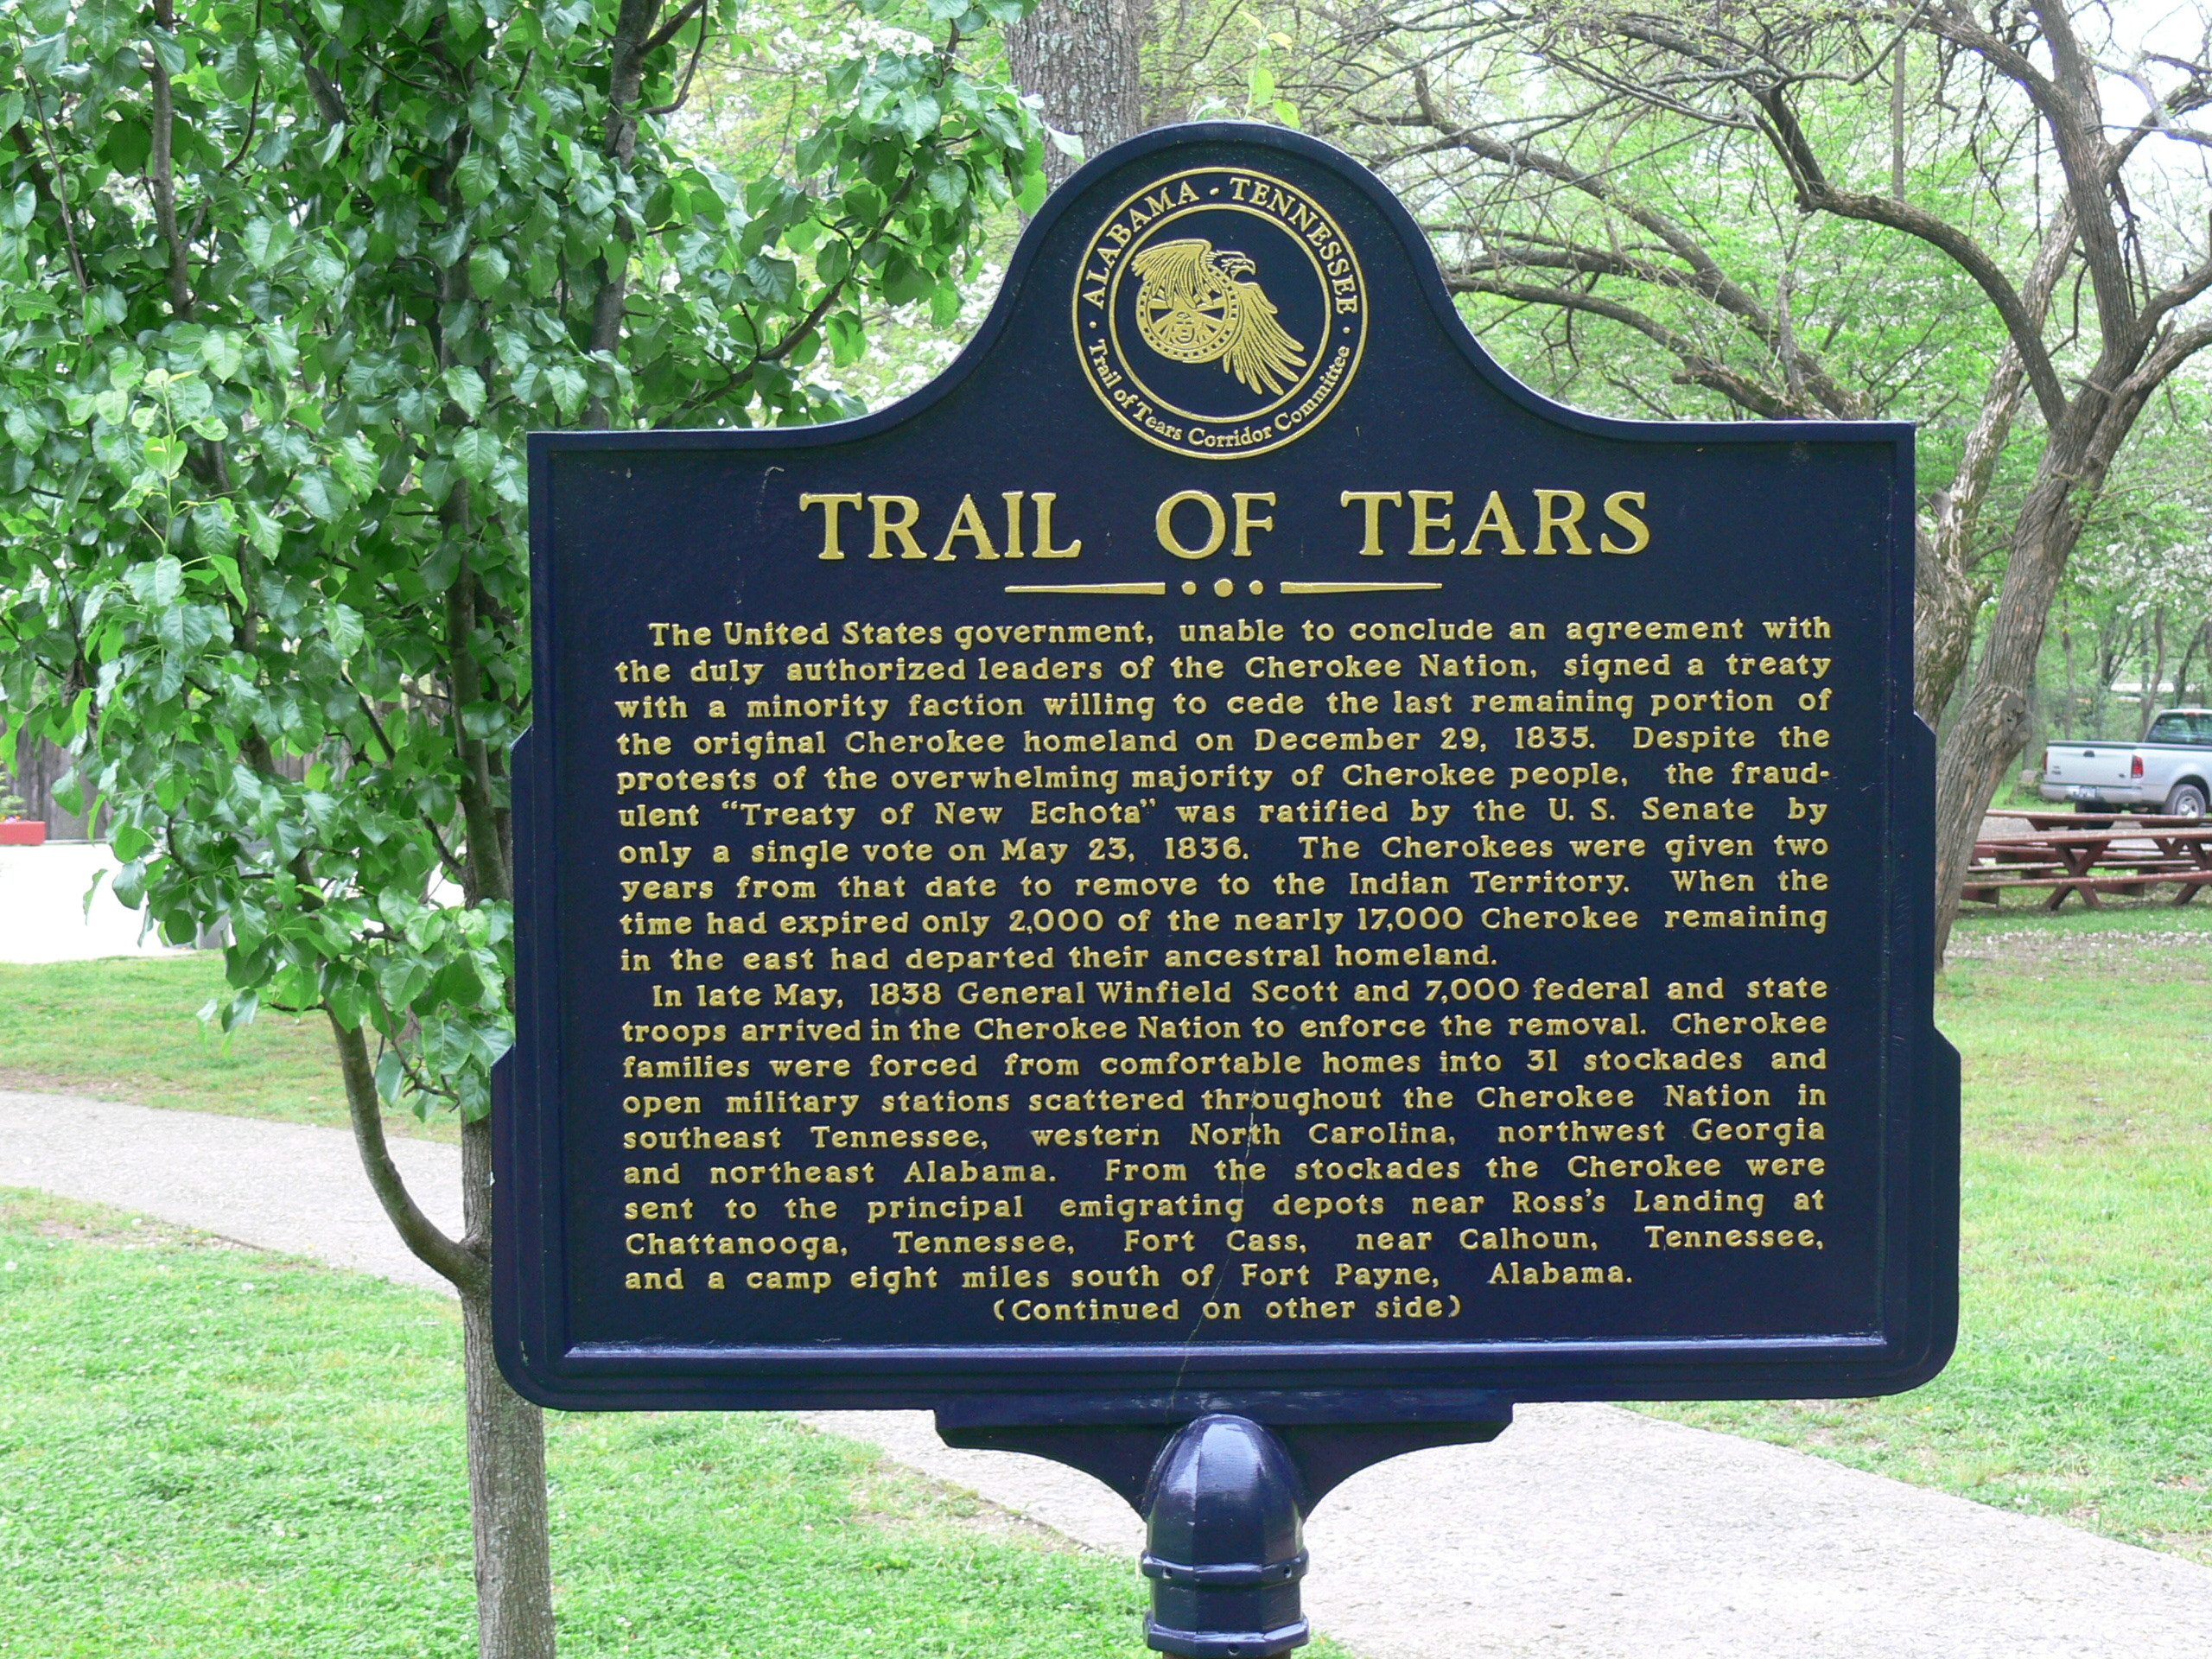 Trail of tears summary